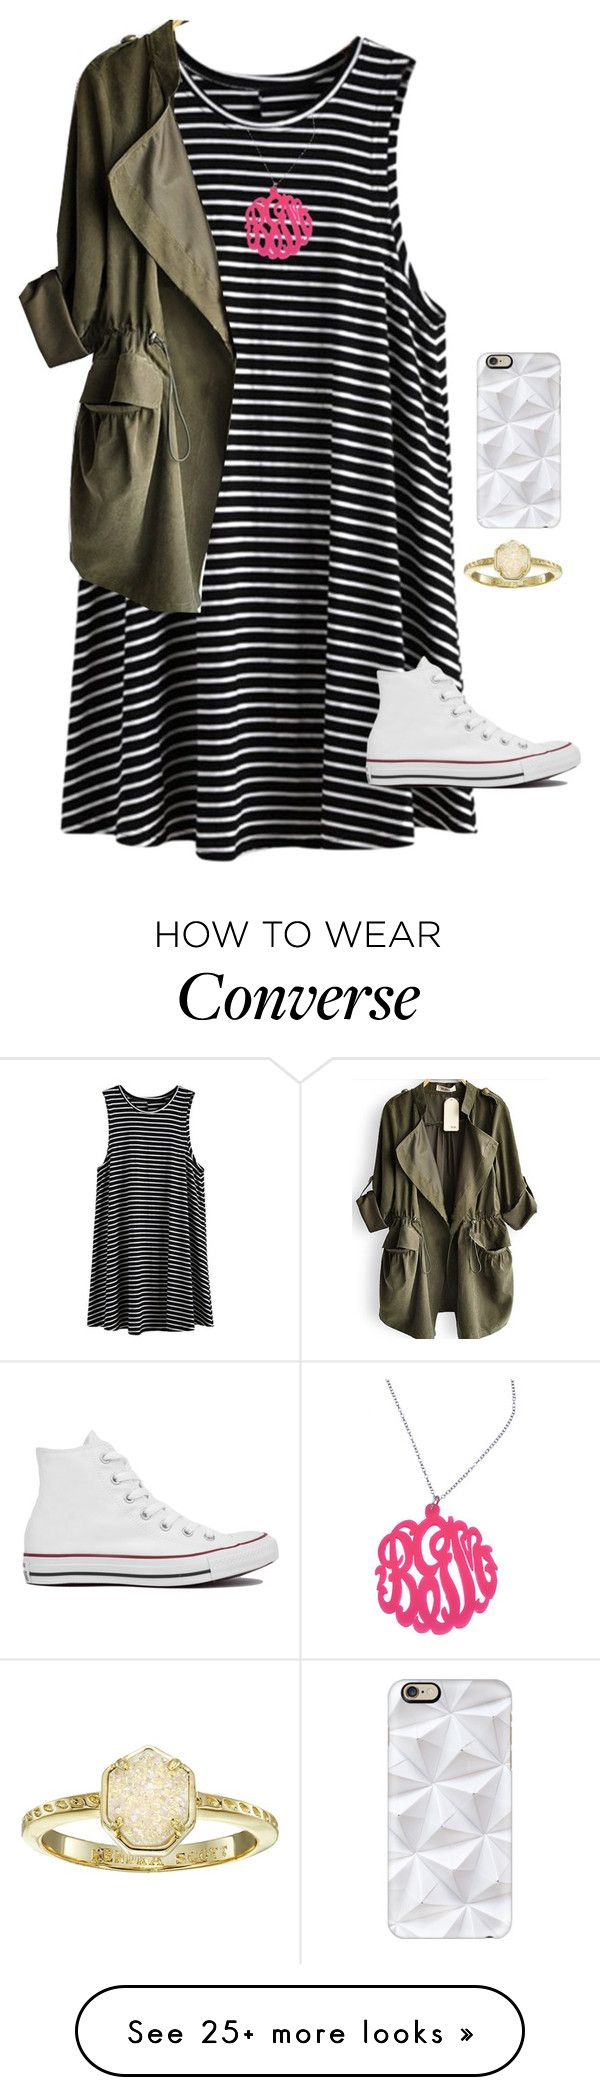 """""""I like this set"""" by avaodom on Polyvore featuring Casetify, Converse, Initial Reaction and Kendra Scott"""